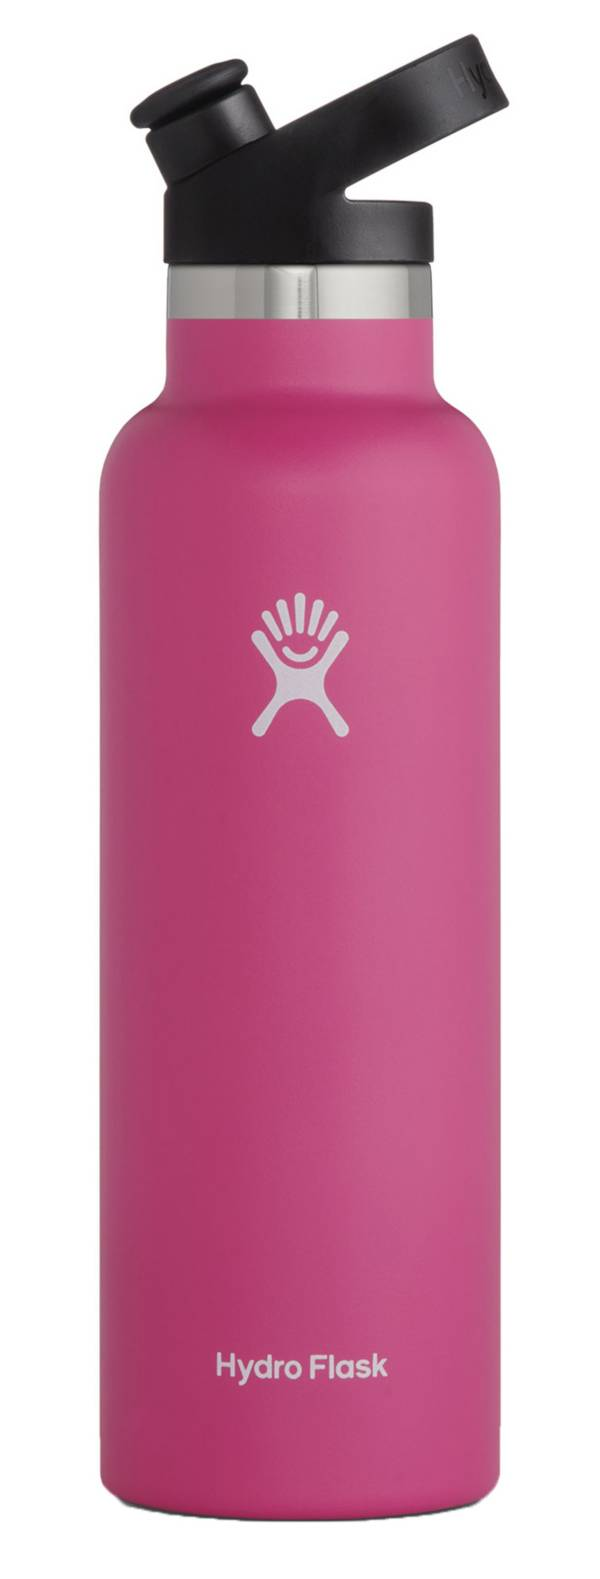 Hydro Flask Standard Mouth 21 oz. Bottle with Sport Cap product image